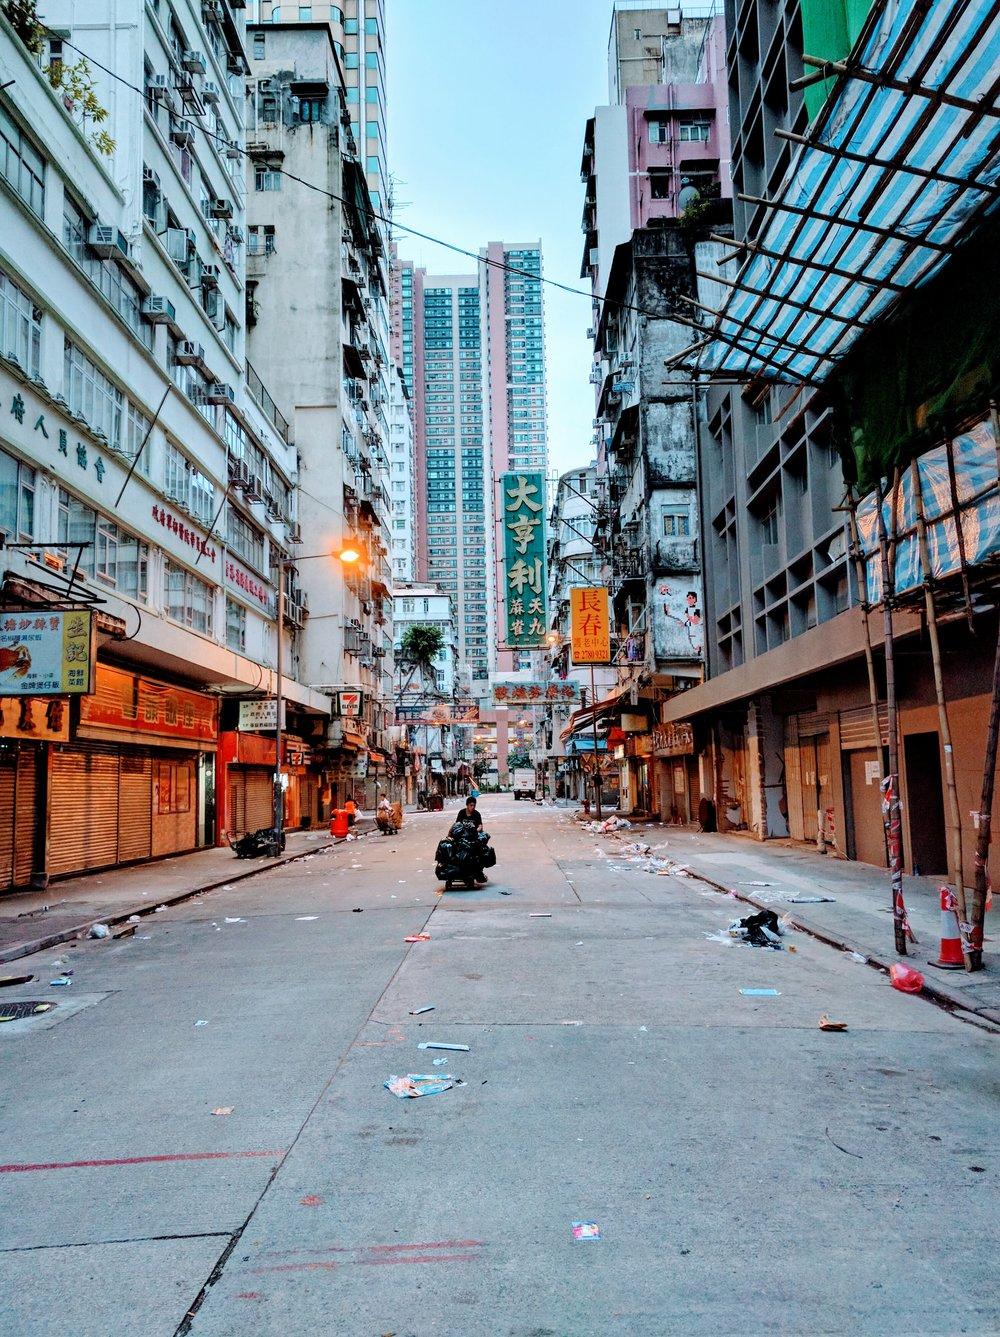 Most people are still sleeping this Saturday morning in Hong Kong